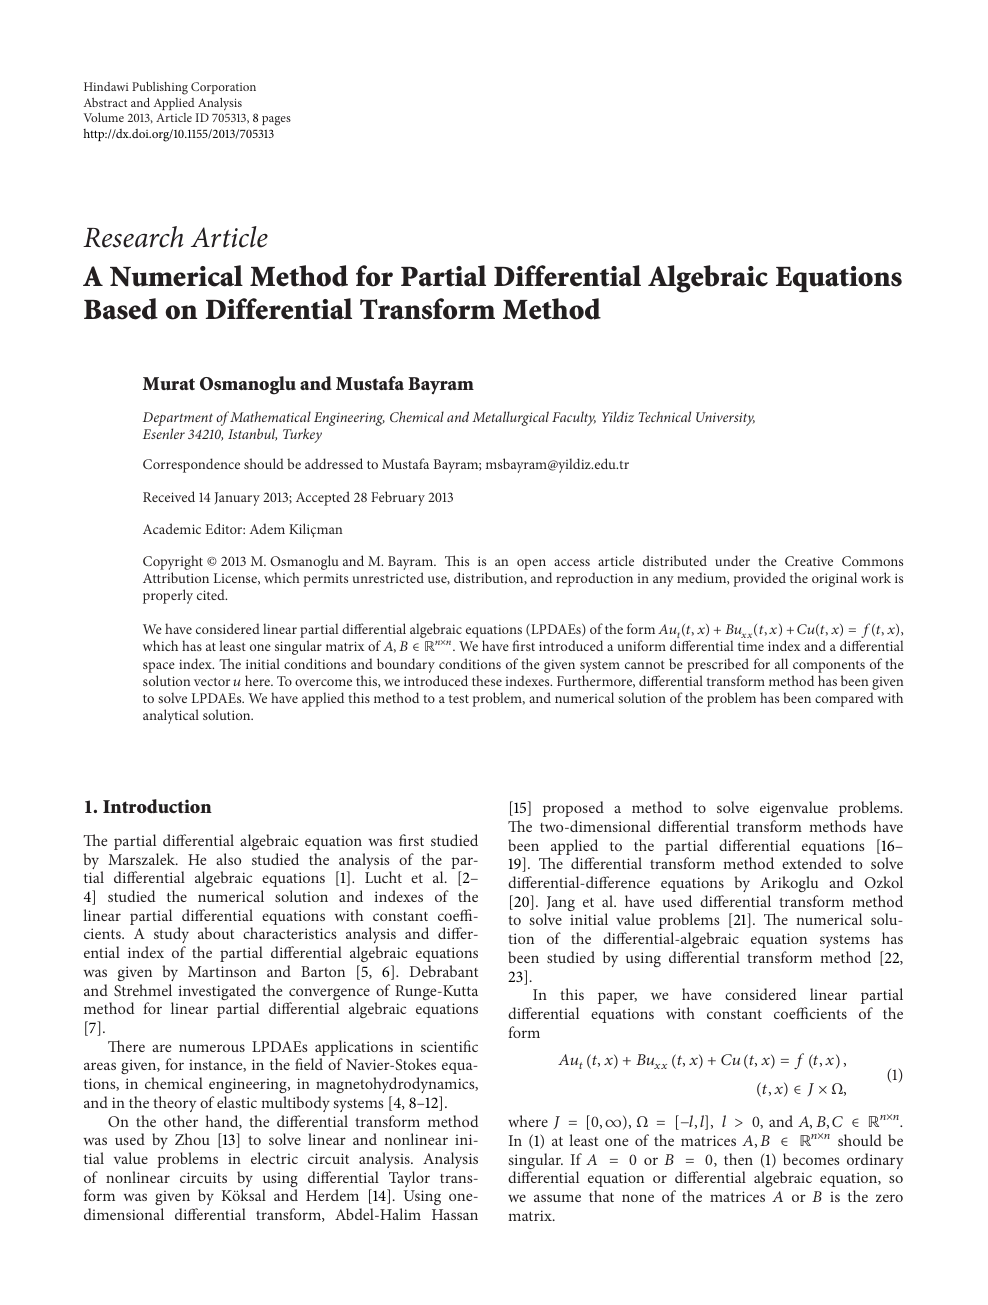 A Numerical Method for Partial Differential Algebraic